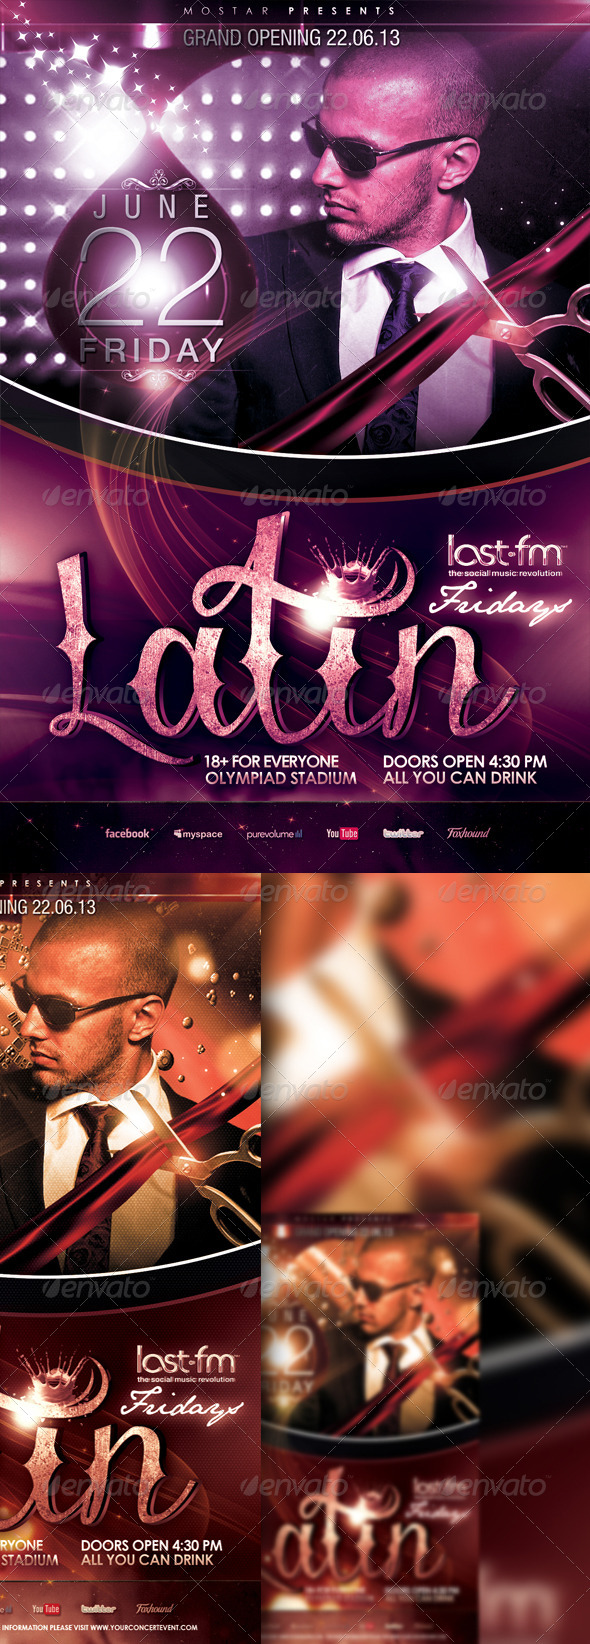 Latin Event Flyer Template - Clubs & Parties Events